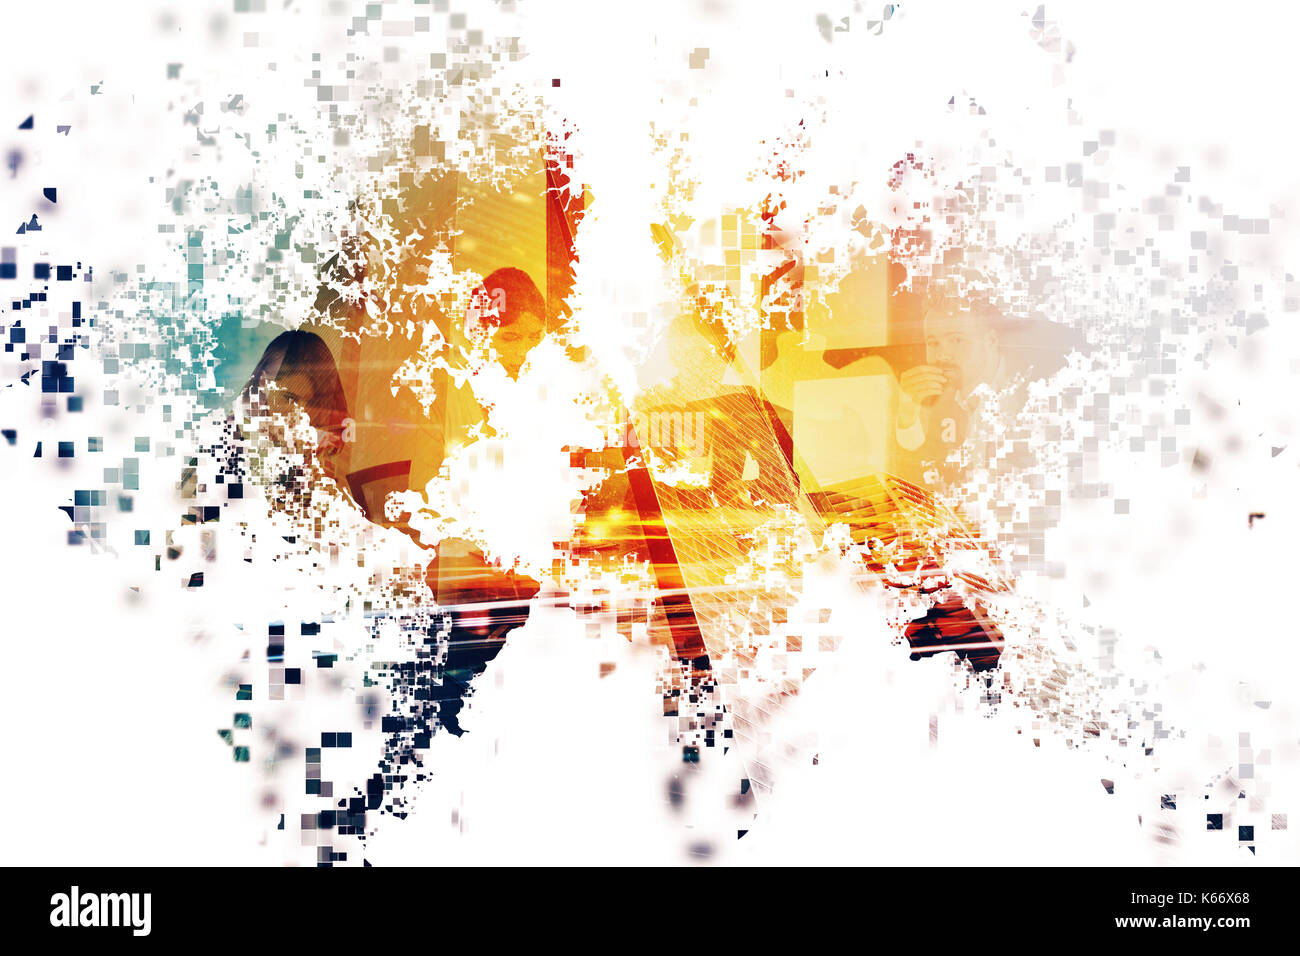 Abstract world with businessperson. Concept of global internet. Double exposure - Stock Image